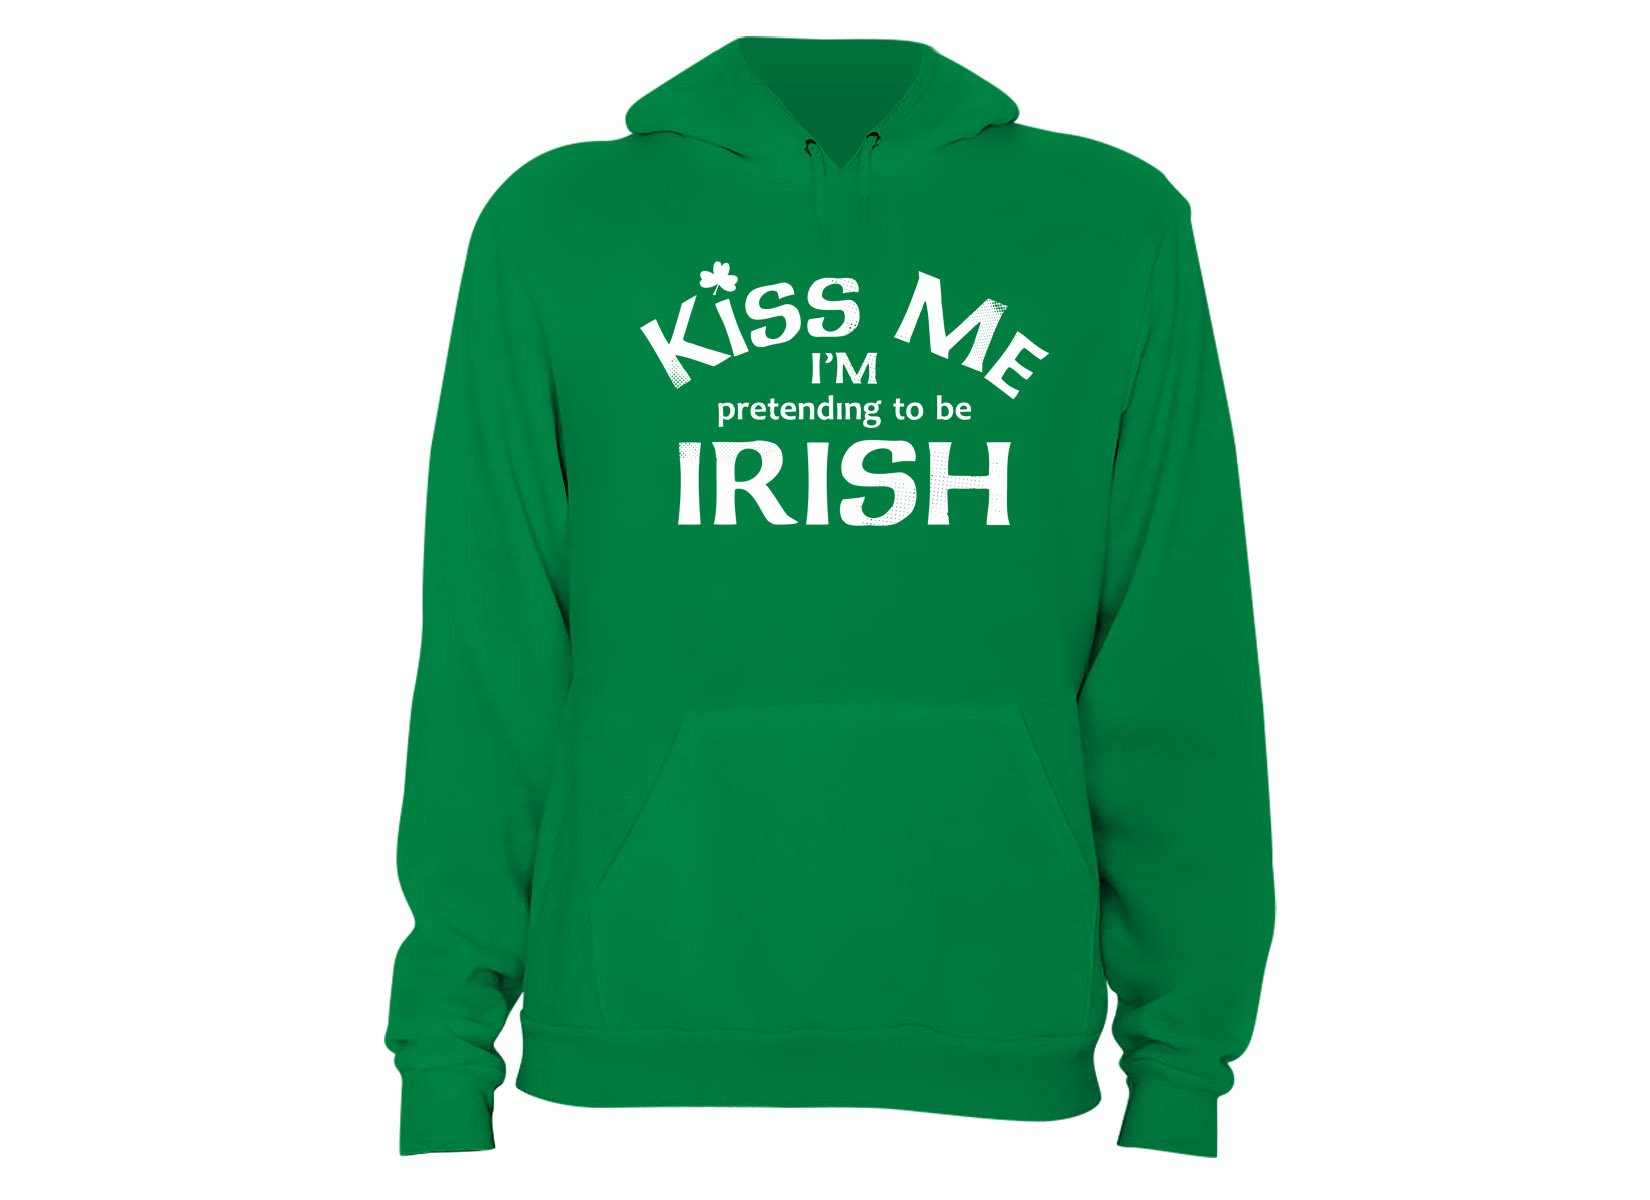 Kiss Me I'm Pretending To Be Irish on Hoodie